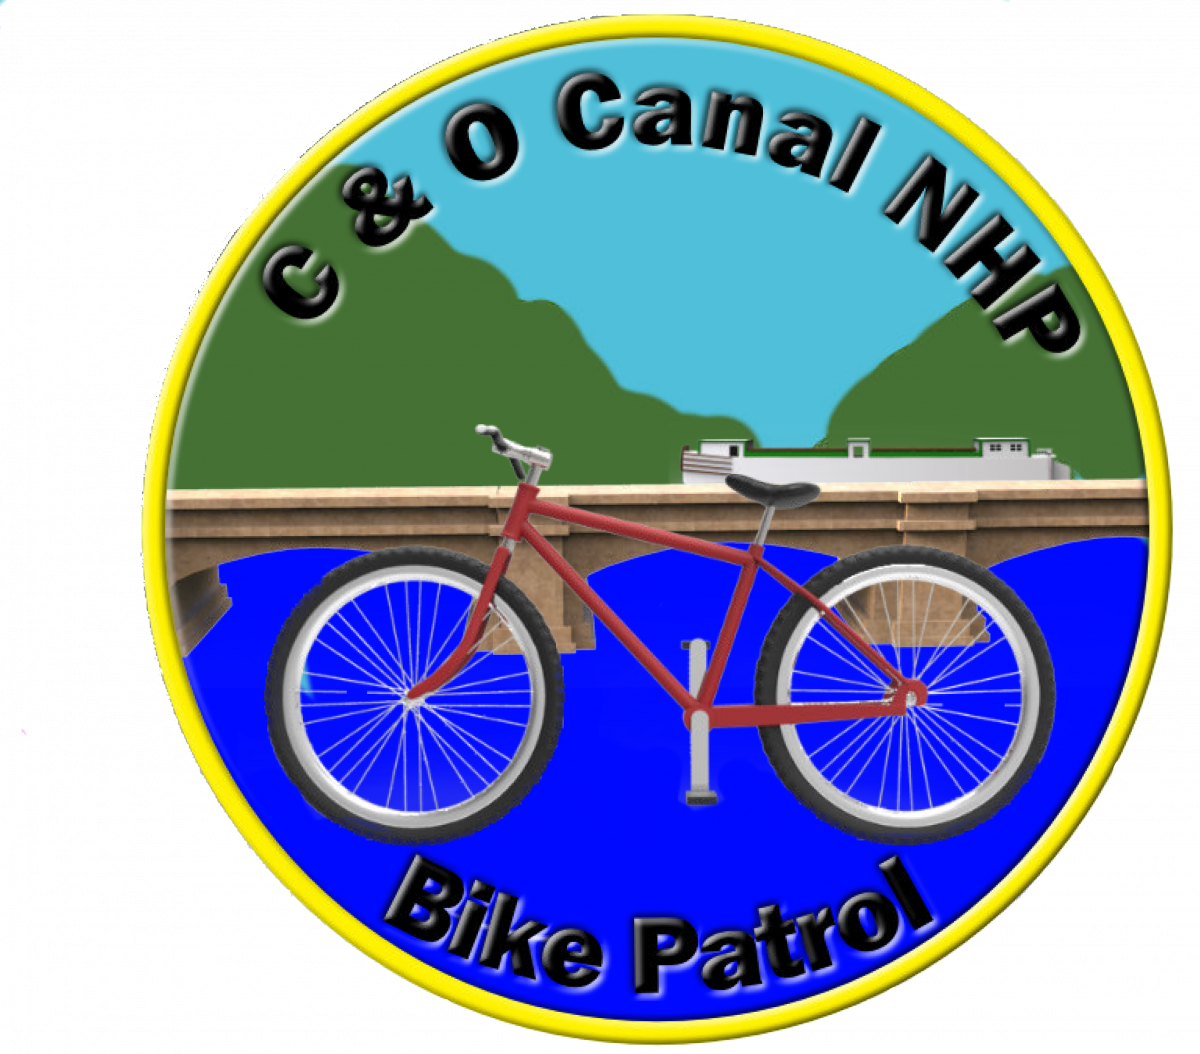 C and O Canal NHP Bike Patrol Logo